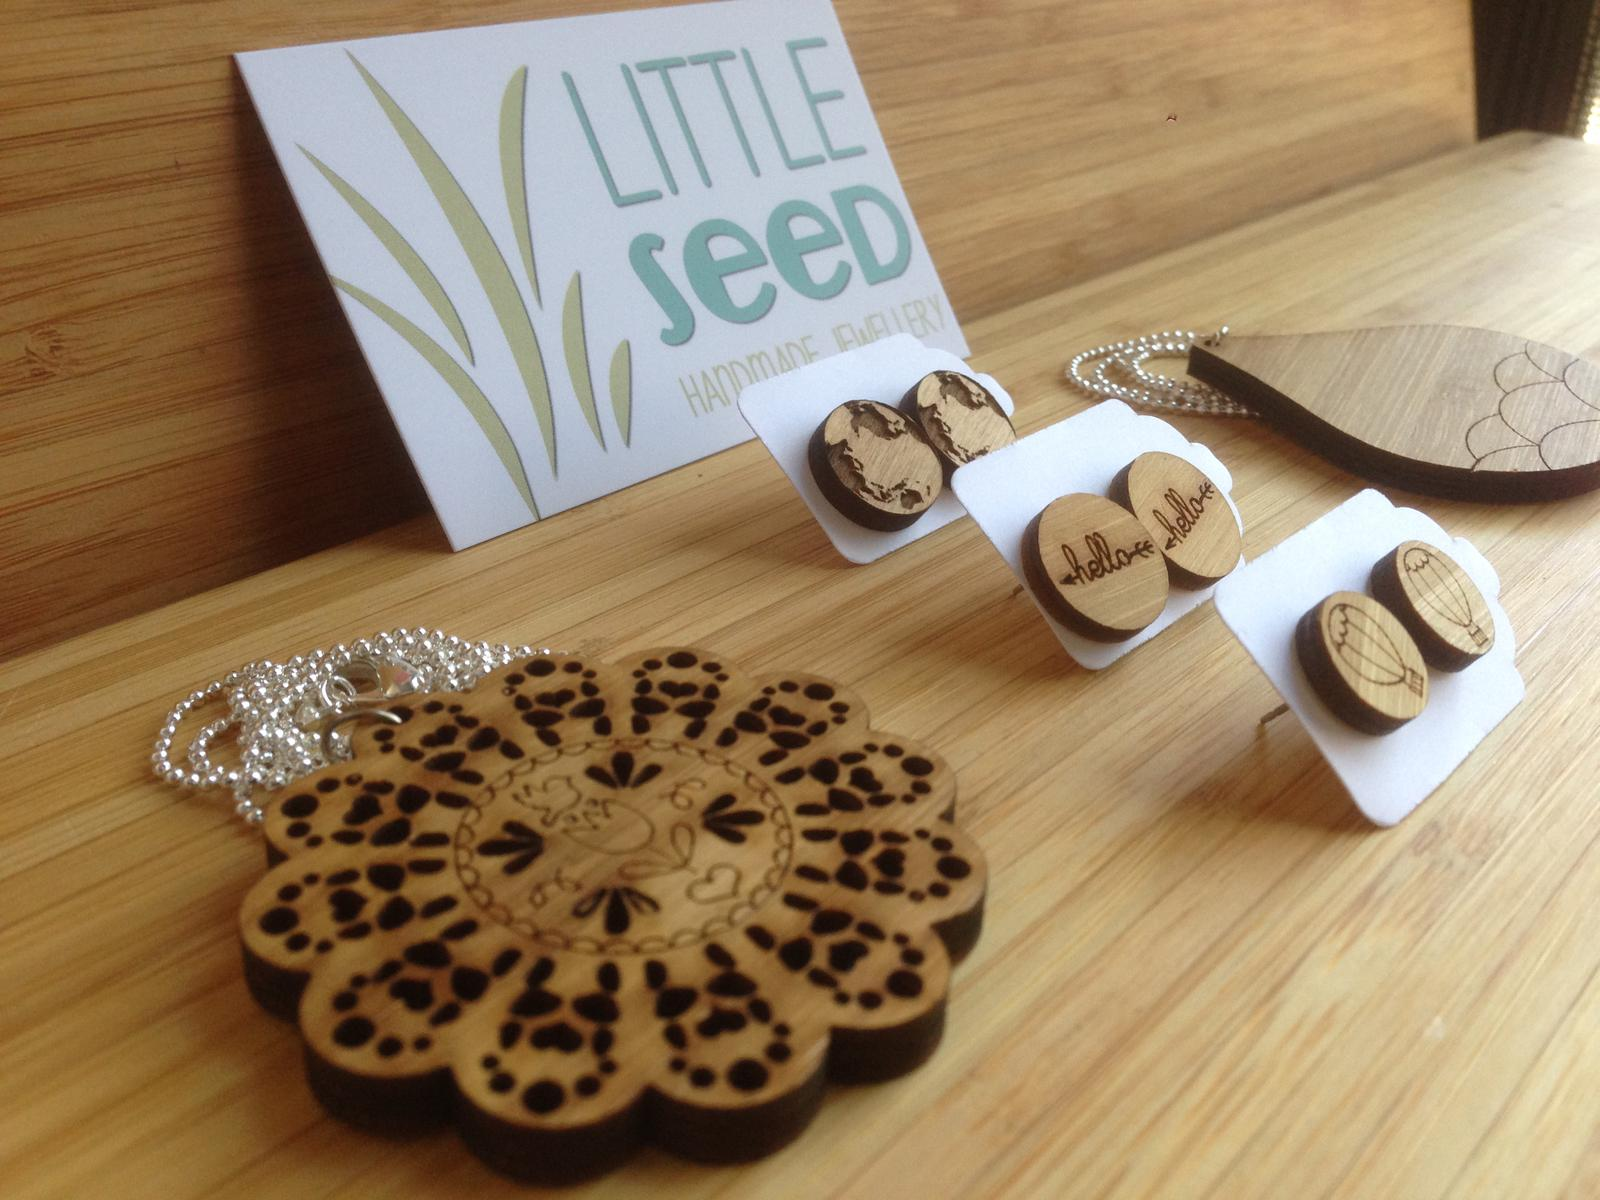 A range of laser cut jewellery available from Little Seed